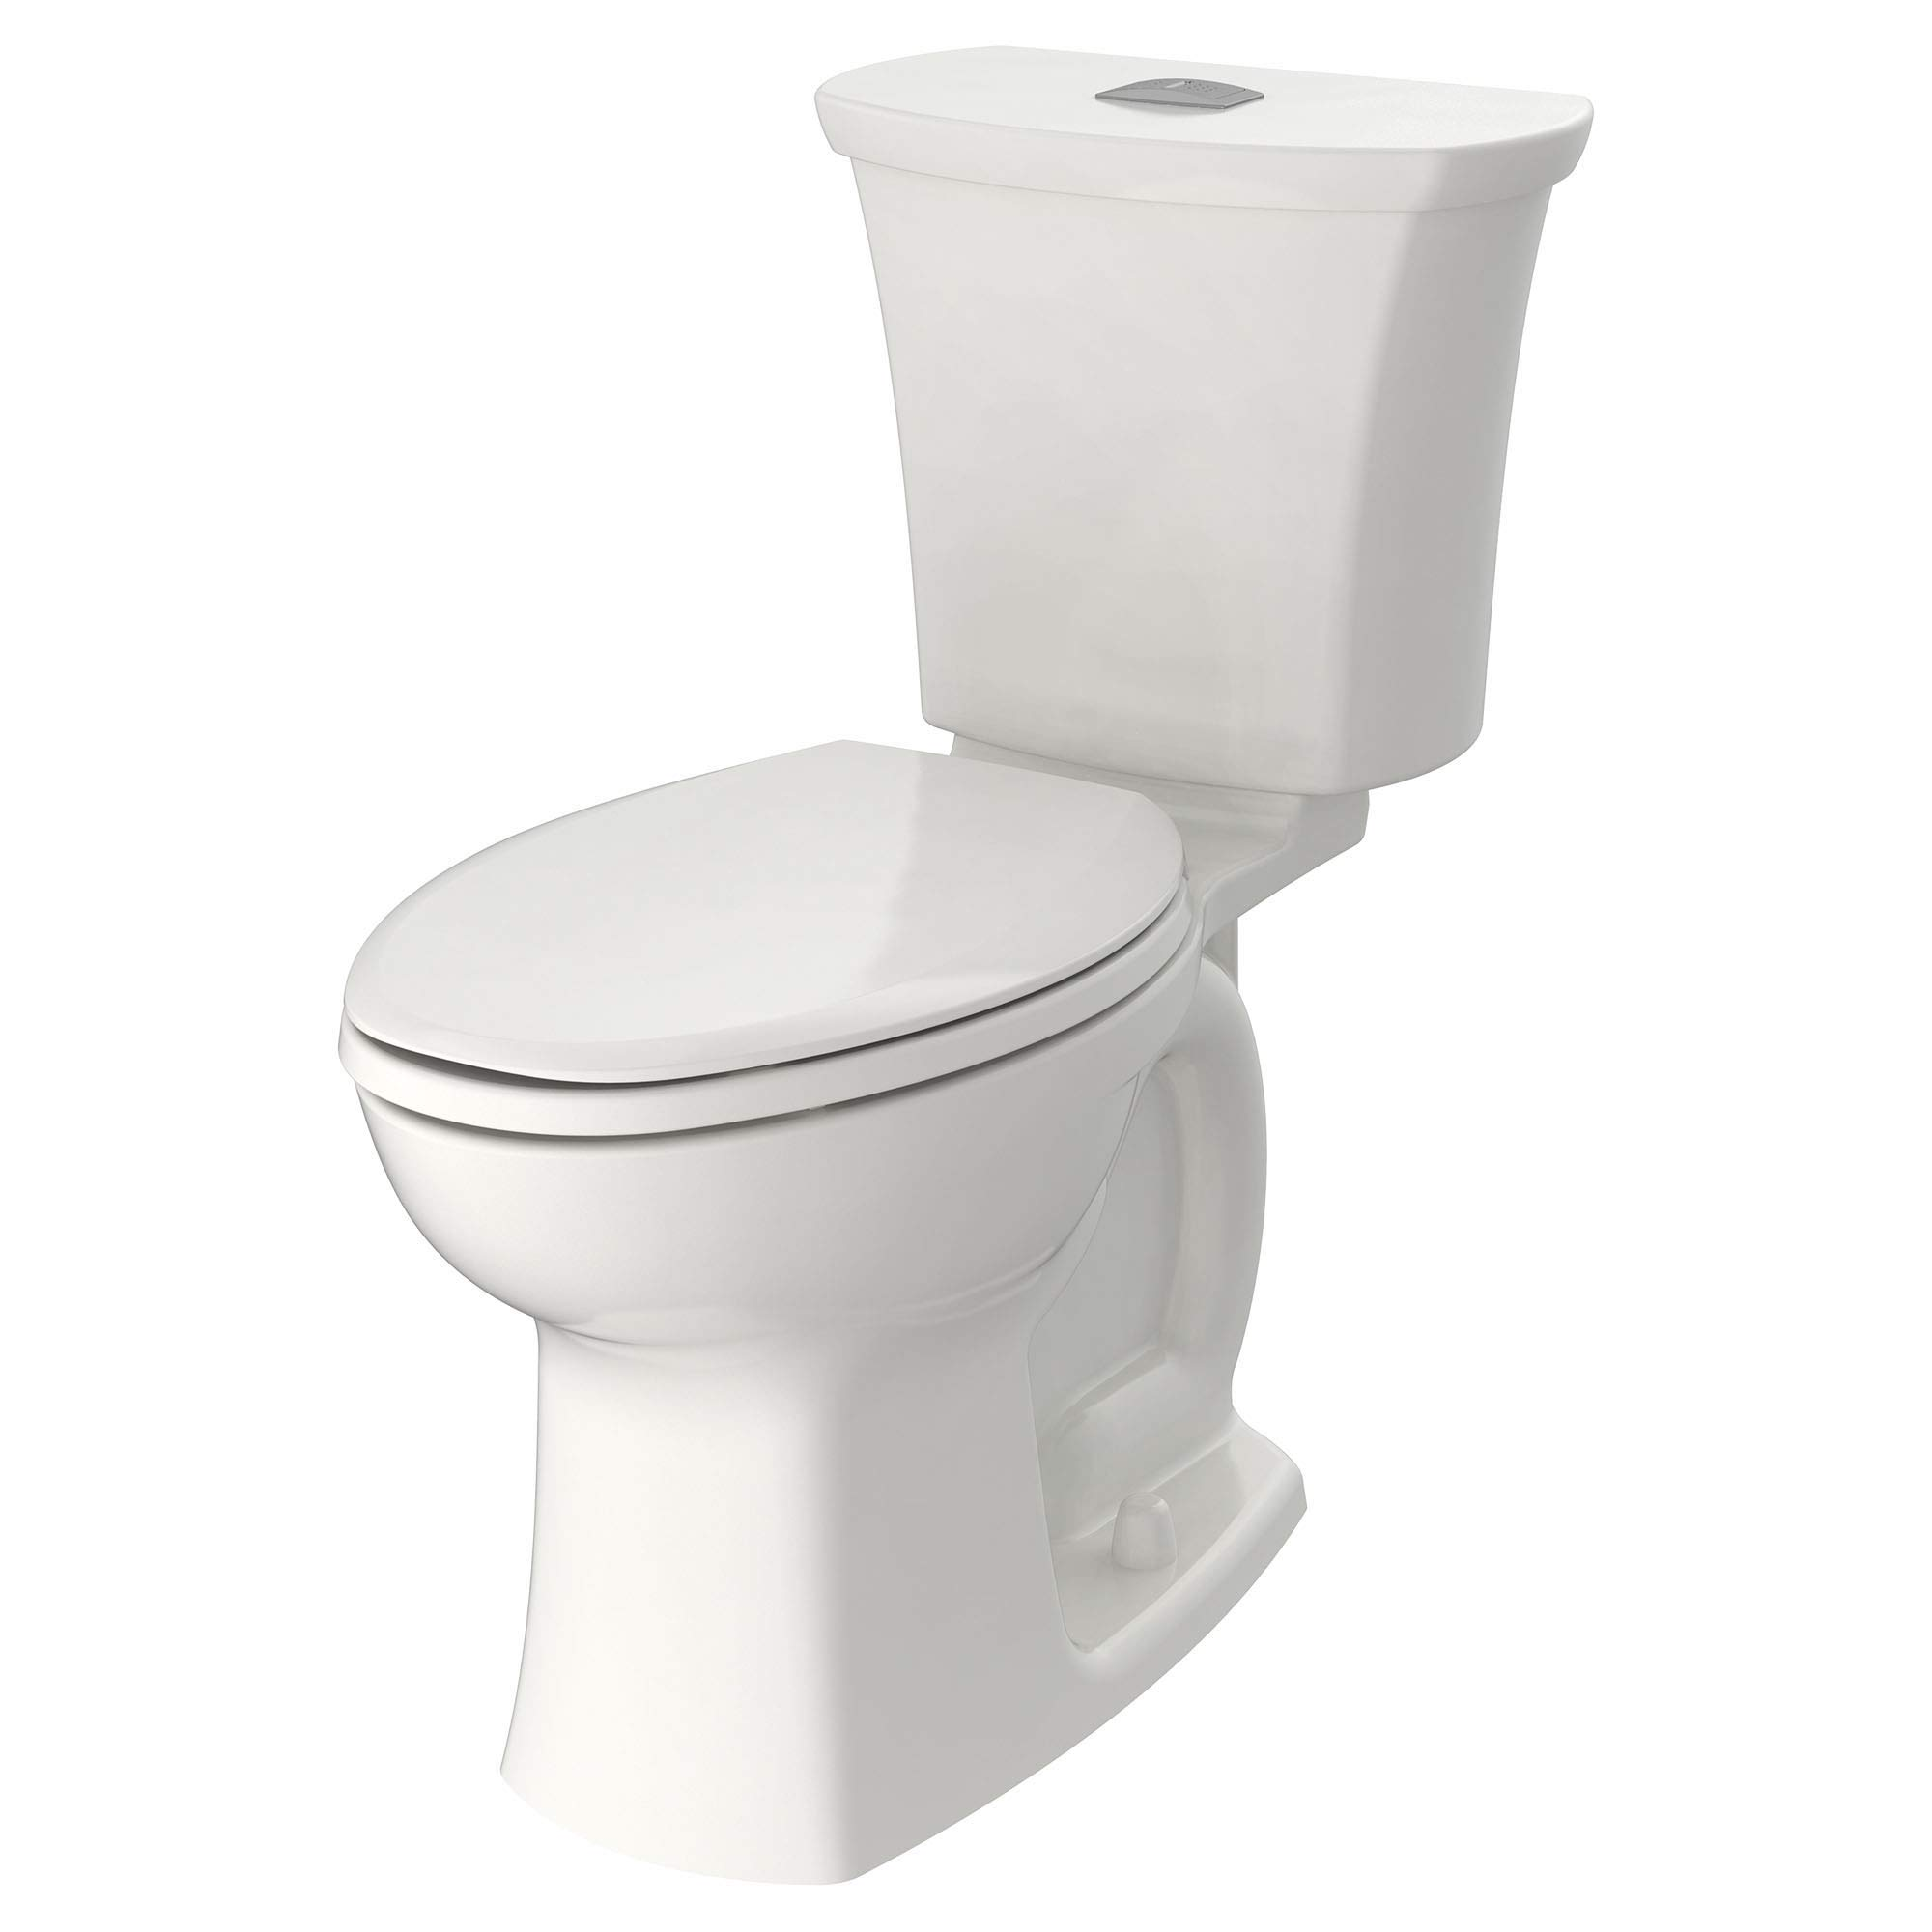 American Standard 204AA200.020 Edgemere Right Height Elongated Dual Flush Toilet White by American Standard (Image #2)